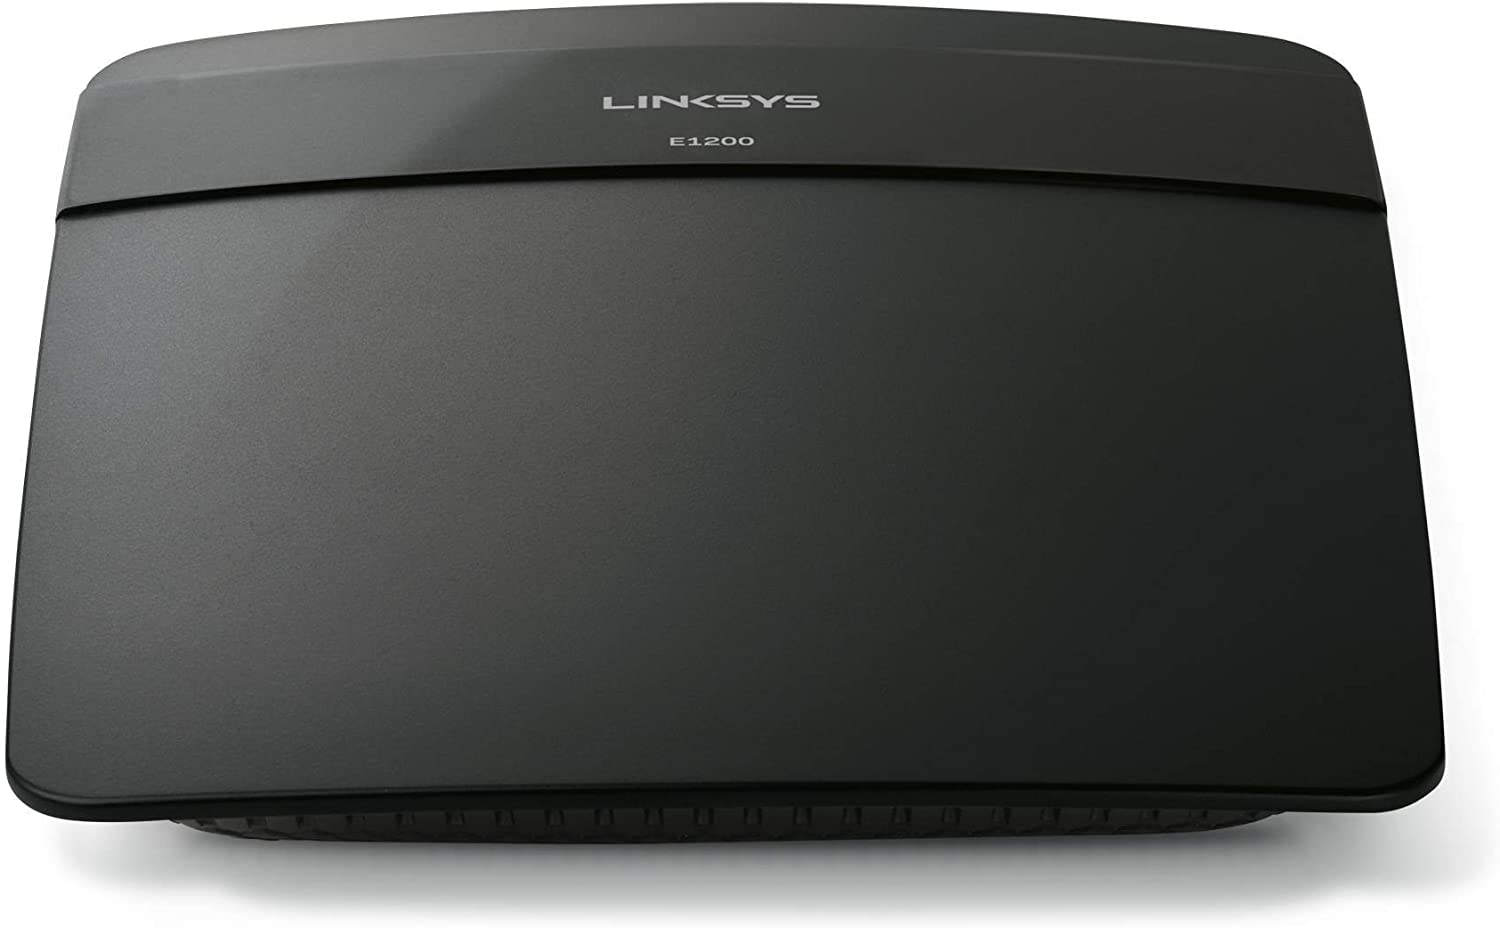 Linksys E1200 Wi-Fi Router